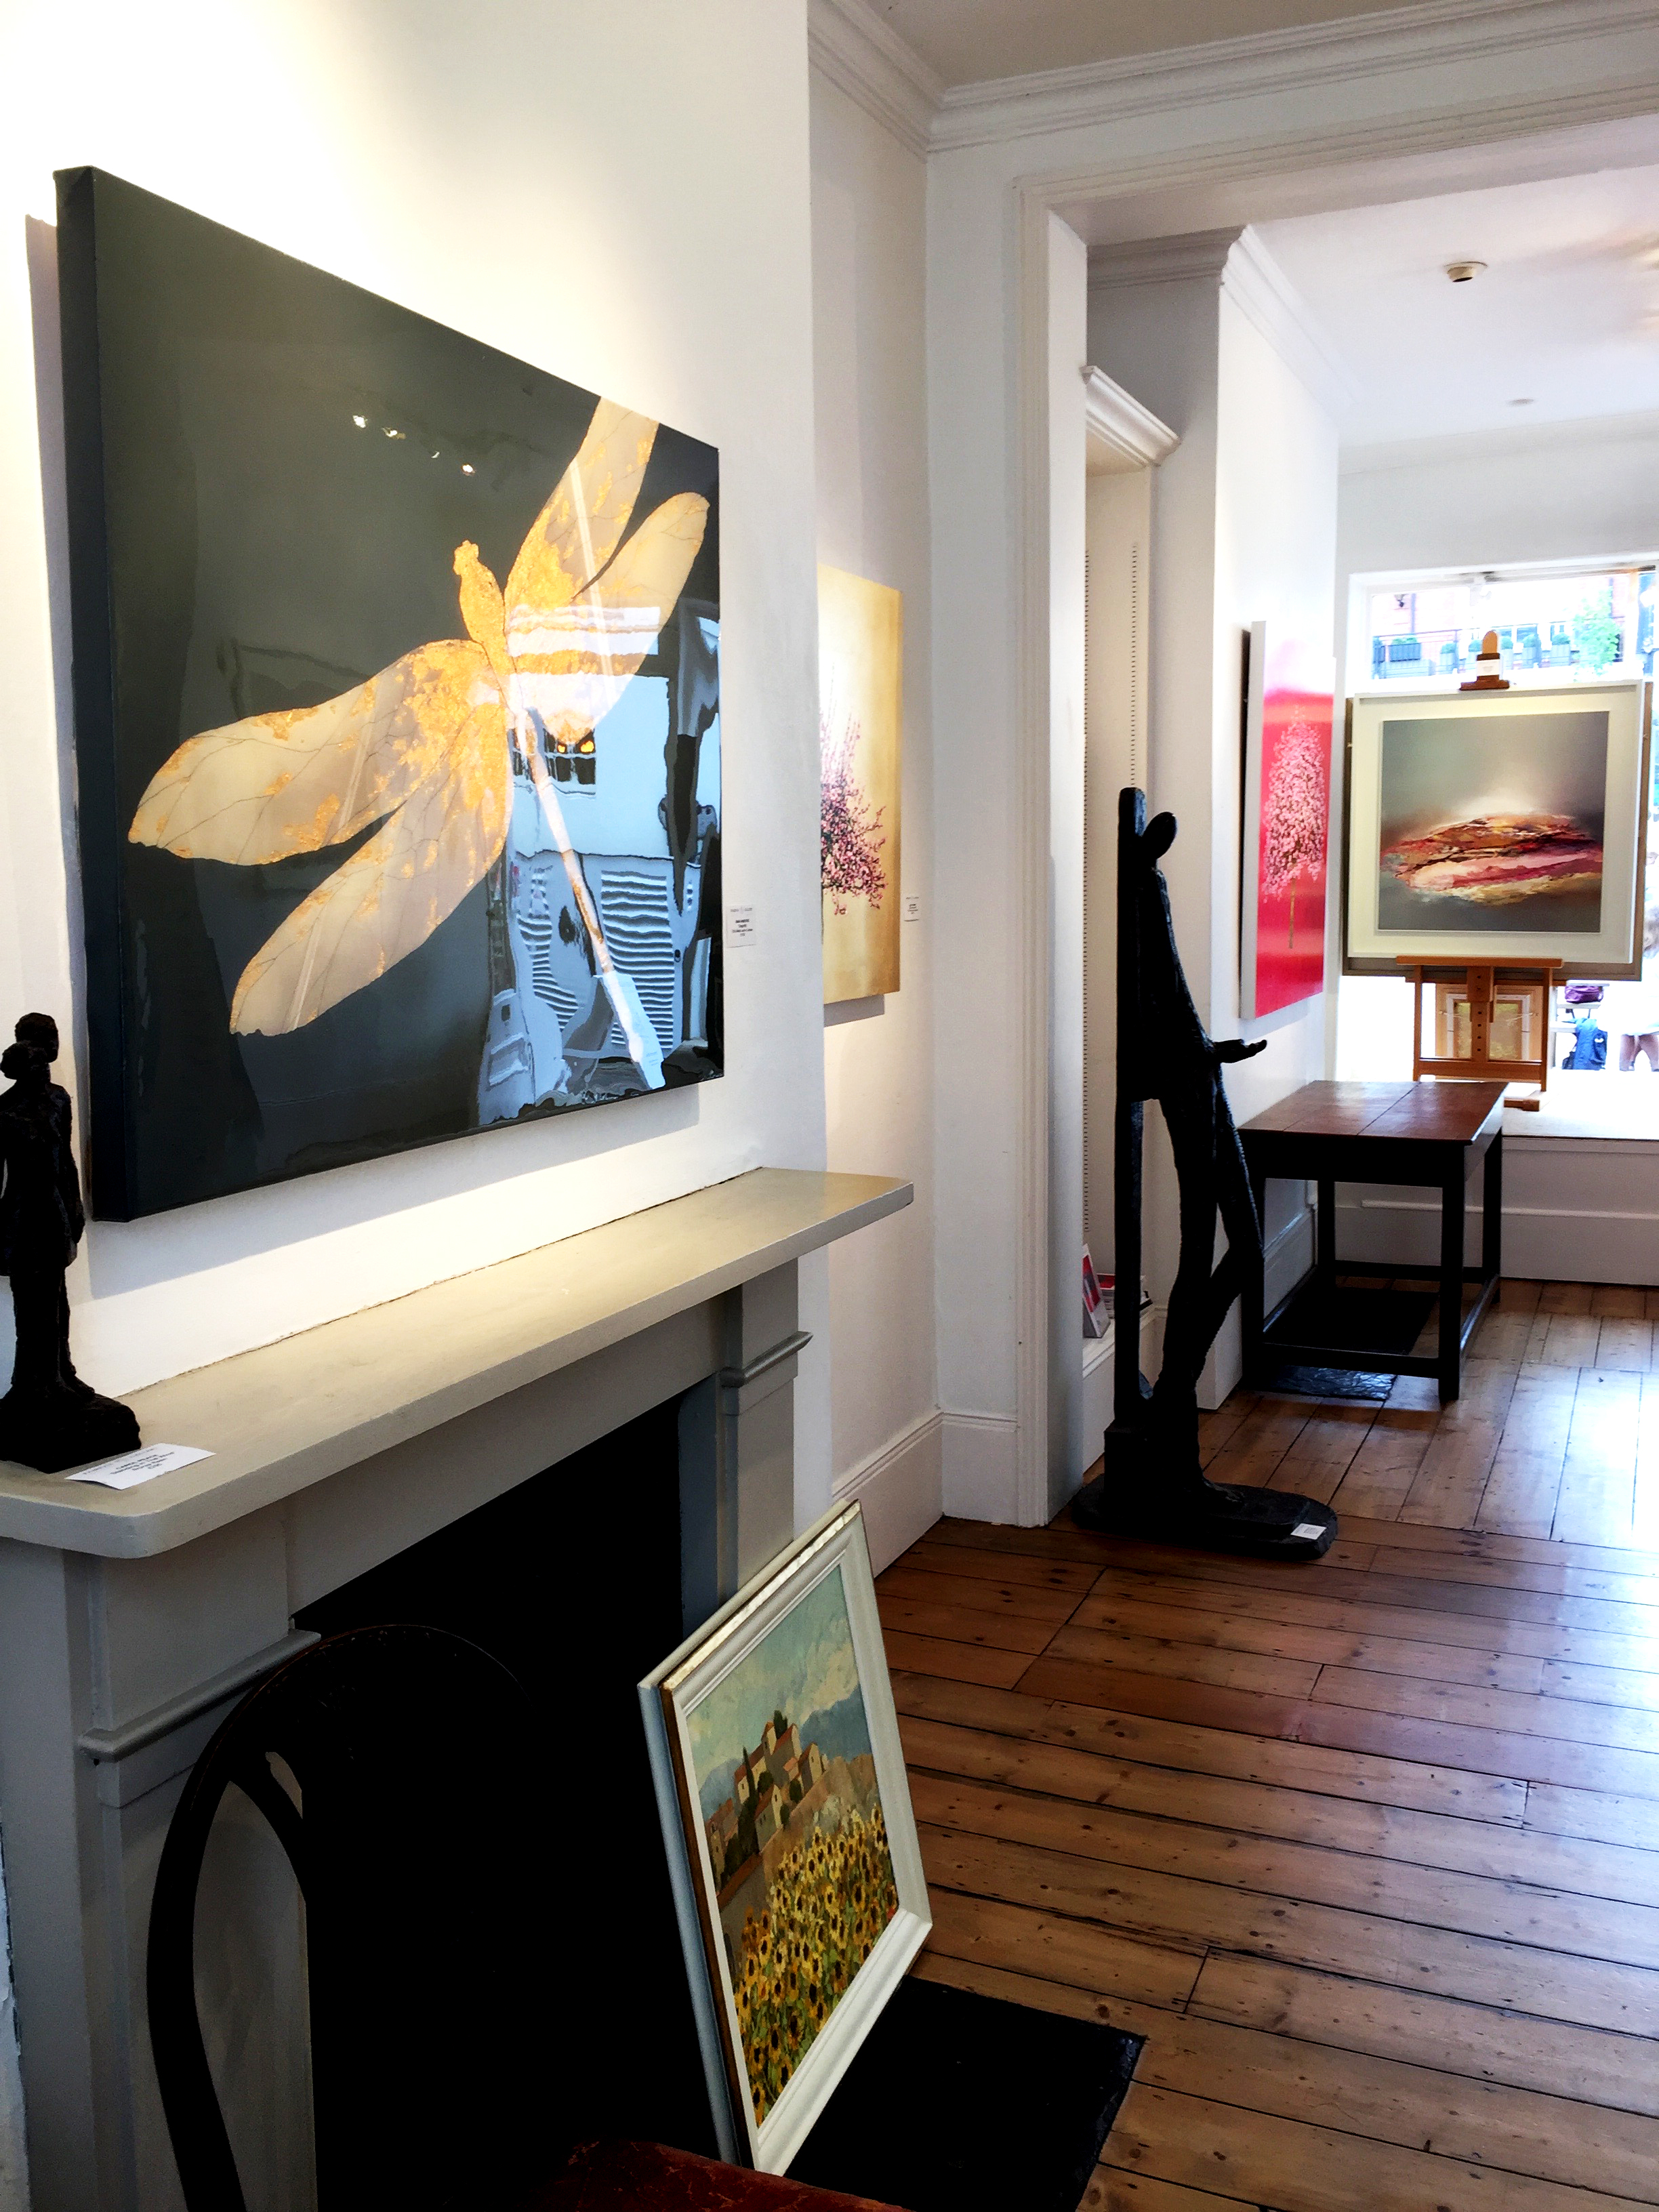 DRAGONFLY painting shown at The Fairfax Gallery